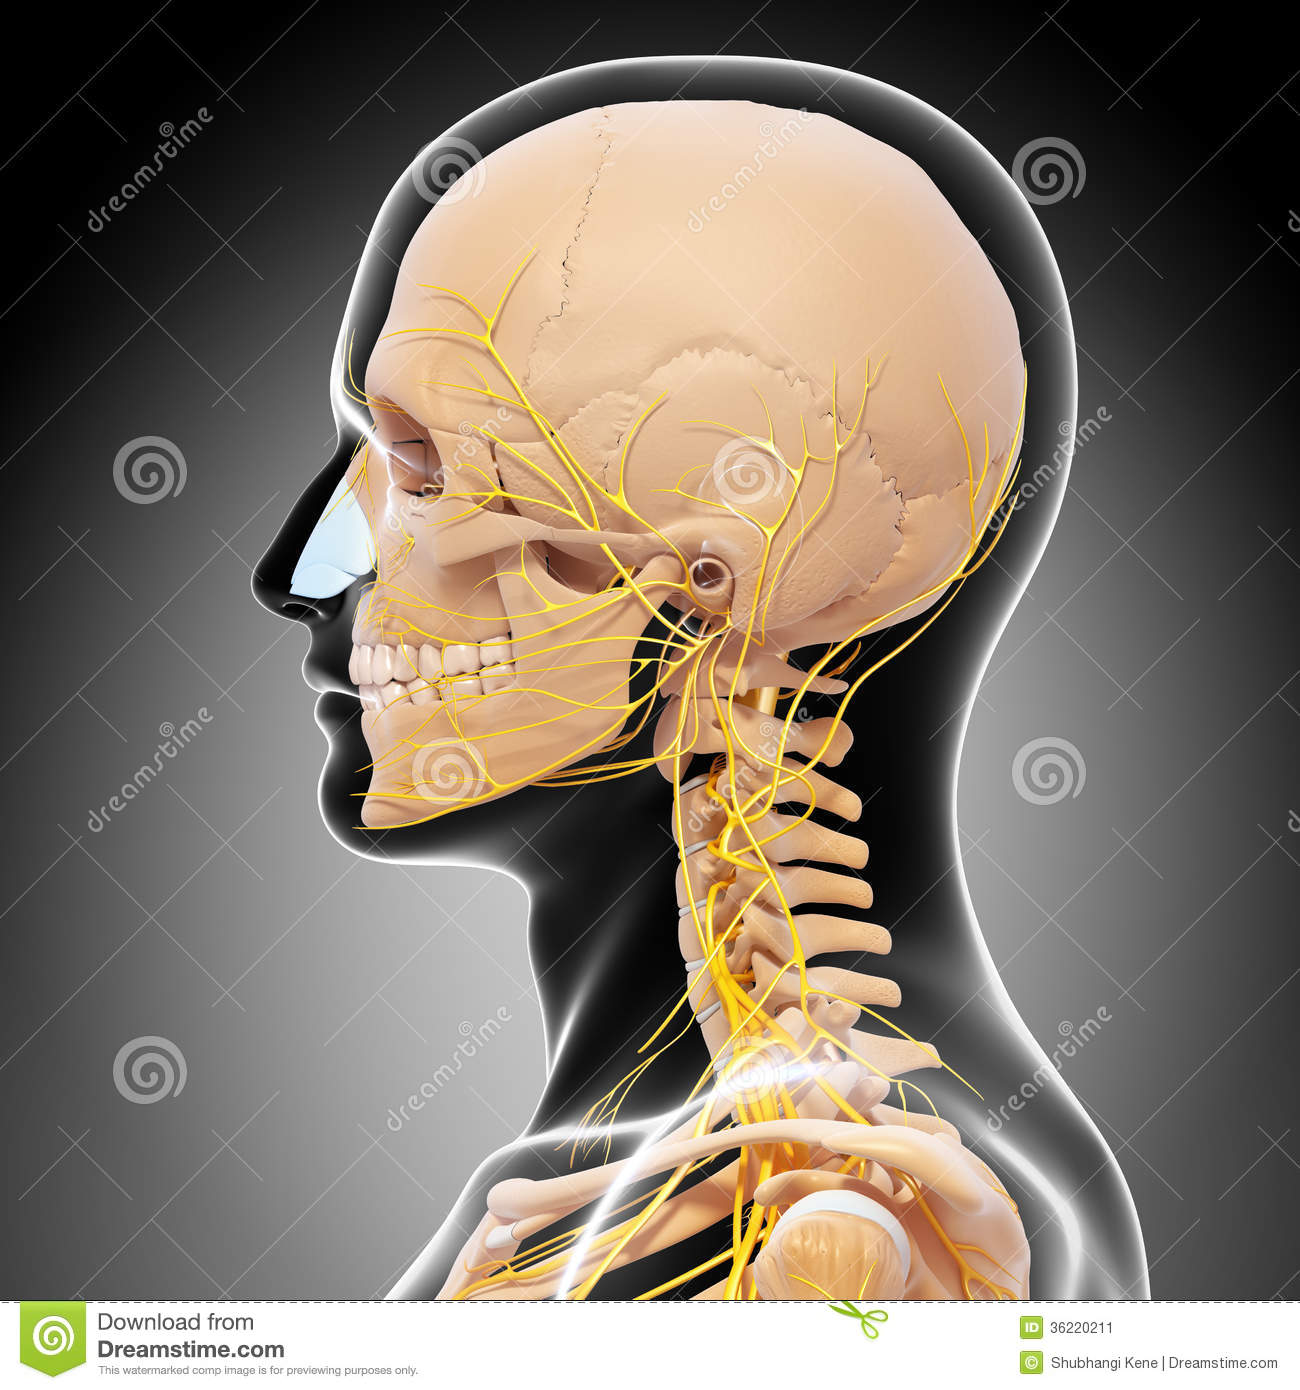 realistic heart diagram pickup wiring seymour duncan anatomy of human head nervous system with throat stock illustration - image: 36220211